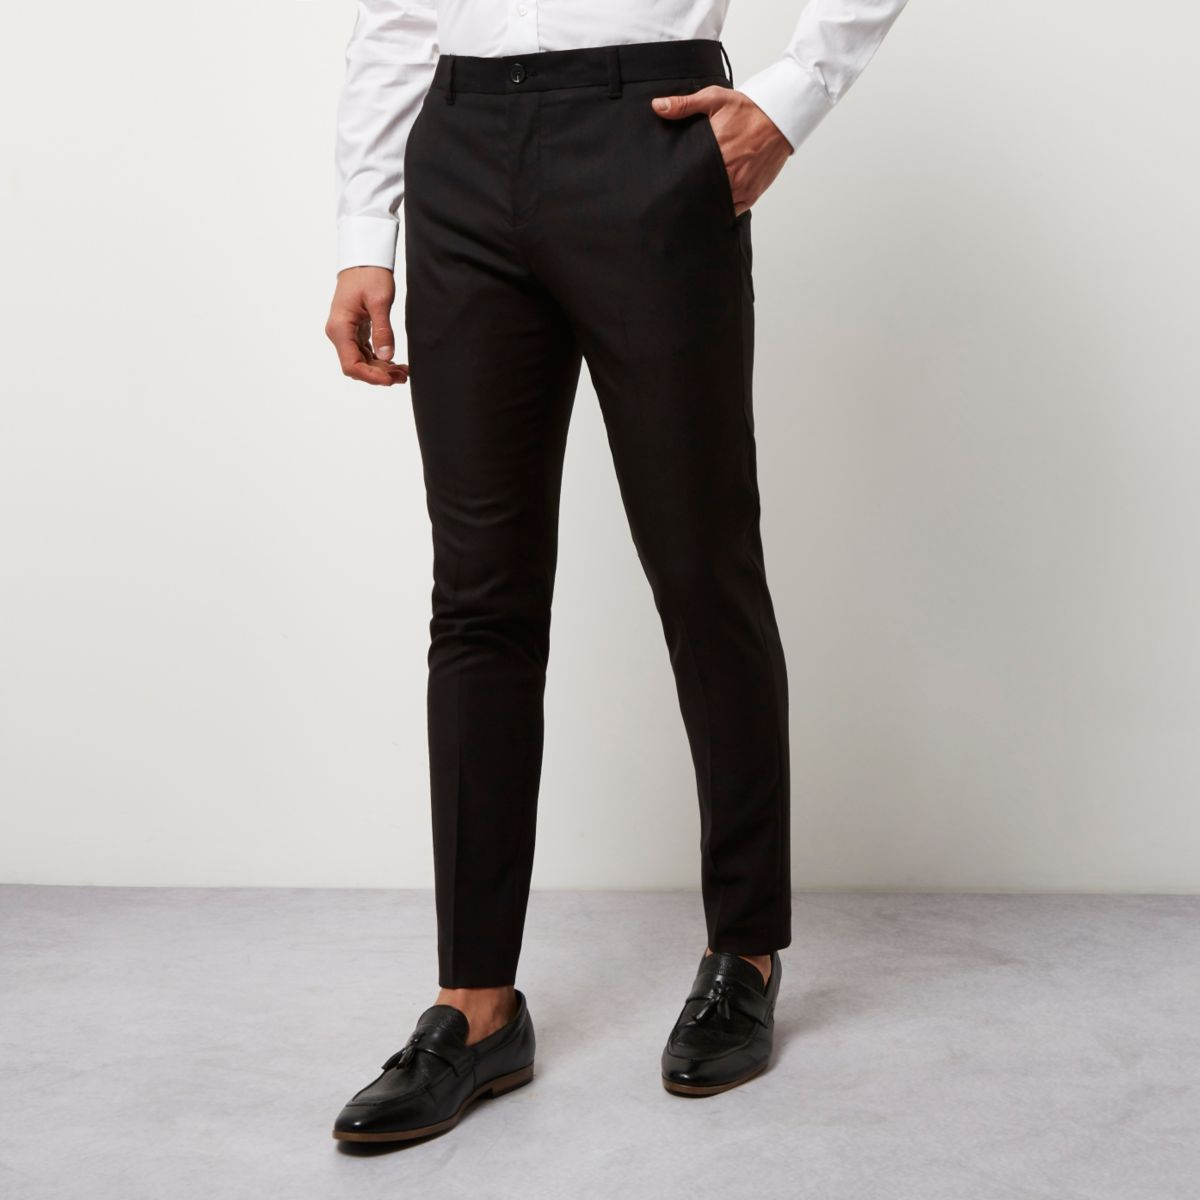 Black skinny smart trousers